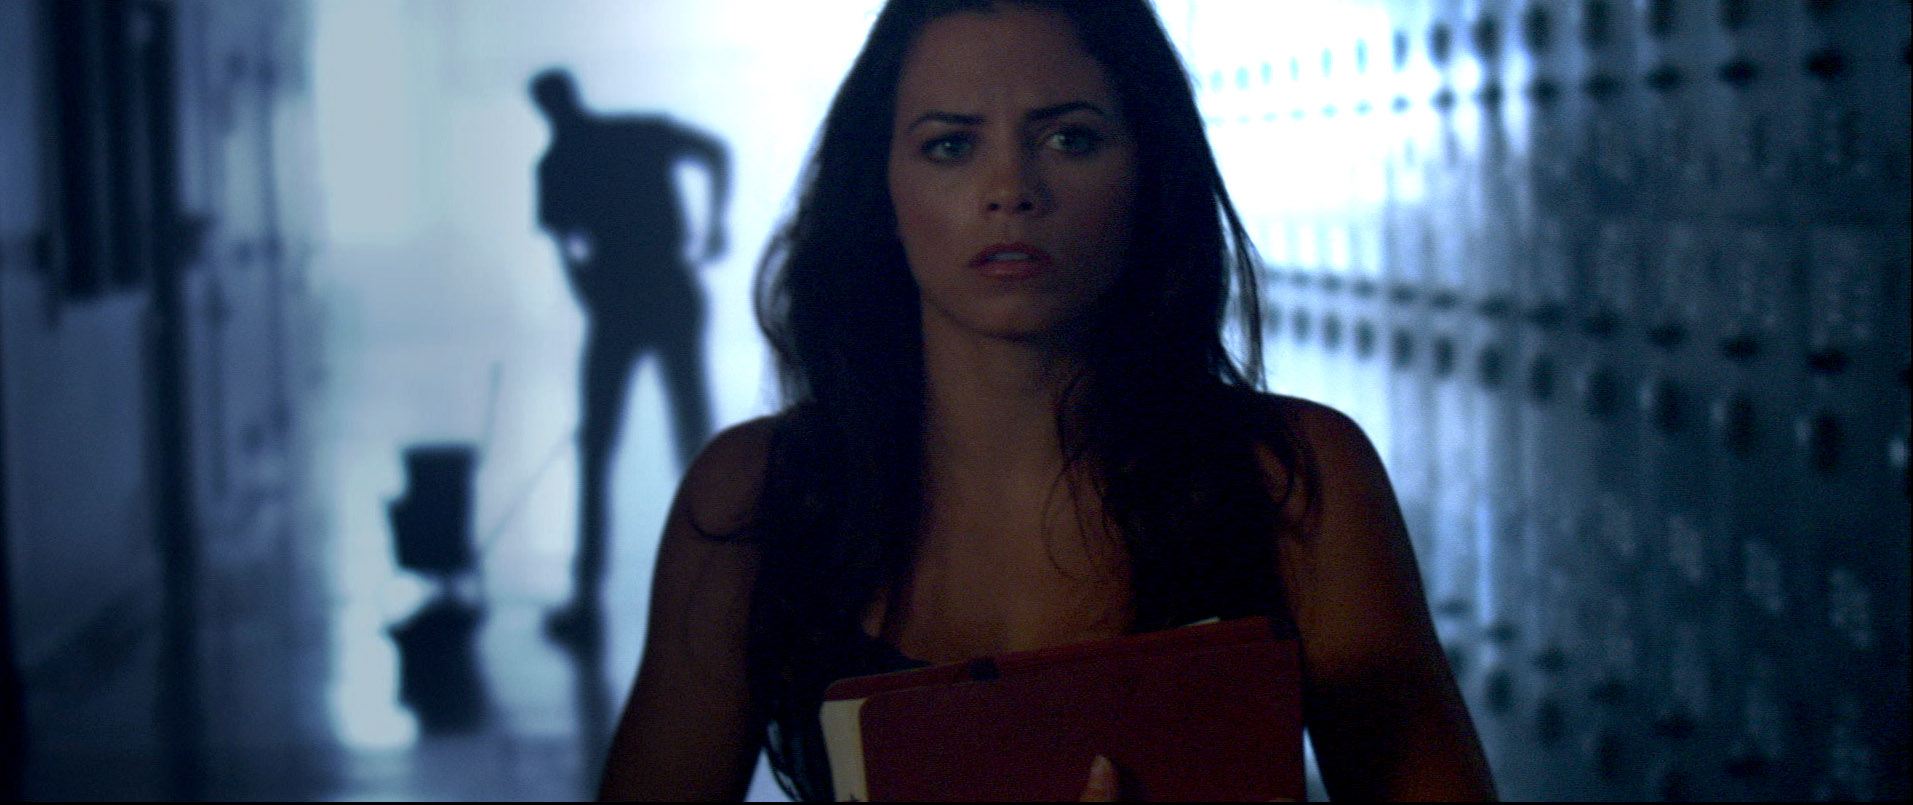 CTU EXCLUSIVE: Jenna Dewan in XBOX Live's 'JANITOR' (Movie Still)